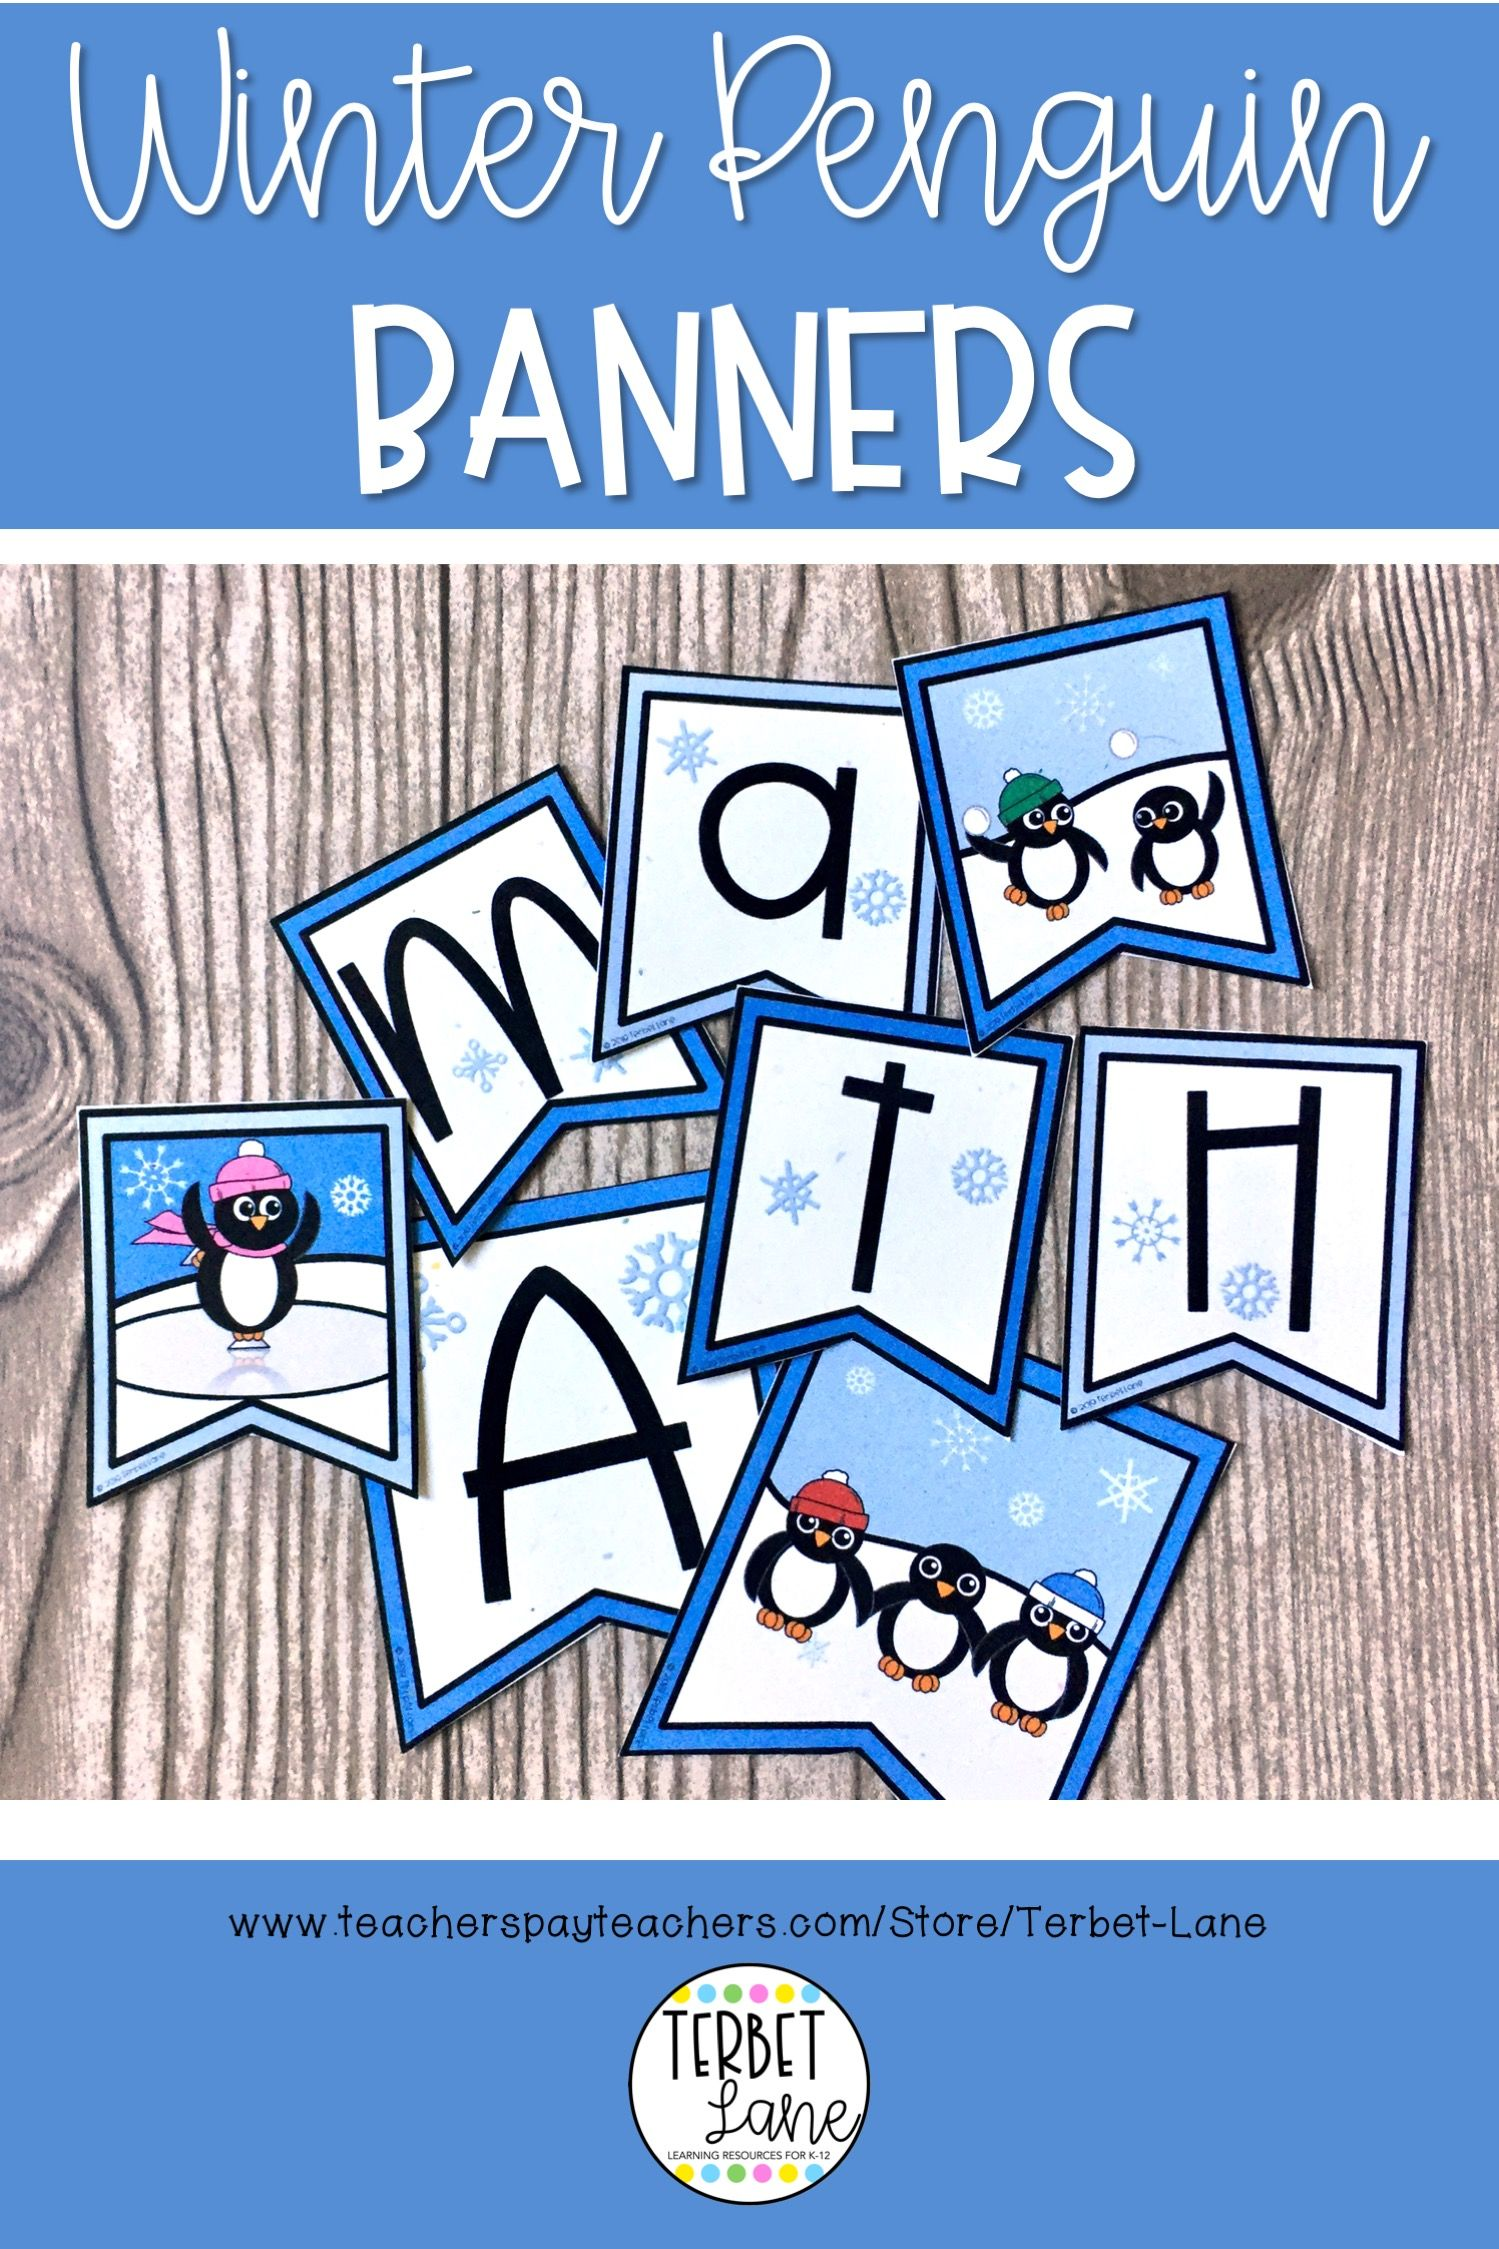 Winter Bulletin Board Letter Banners Penguin Themed Bulletin Board Letters Winter Bulletin Boards First Day Of School Activities